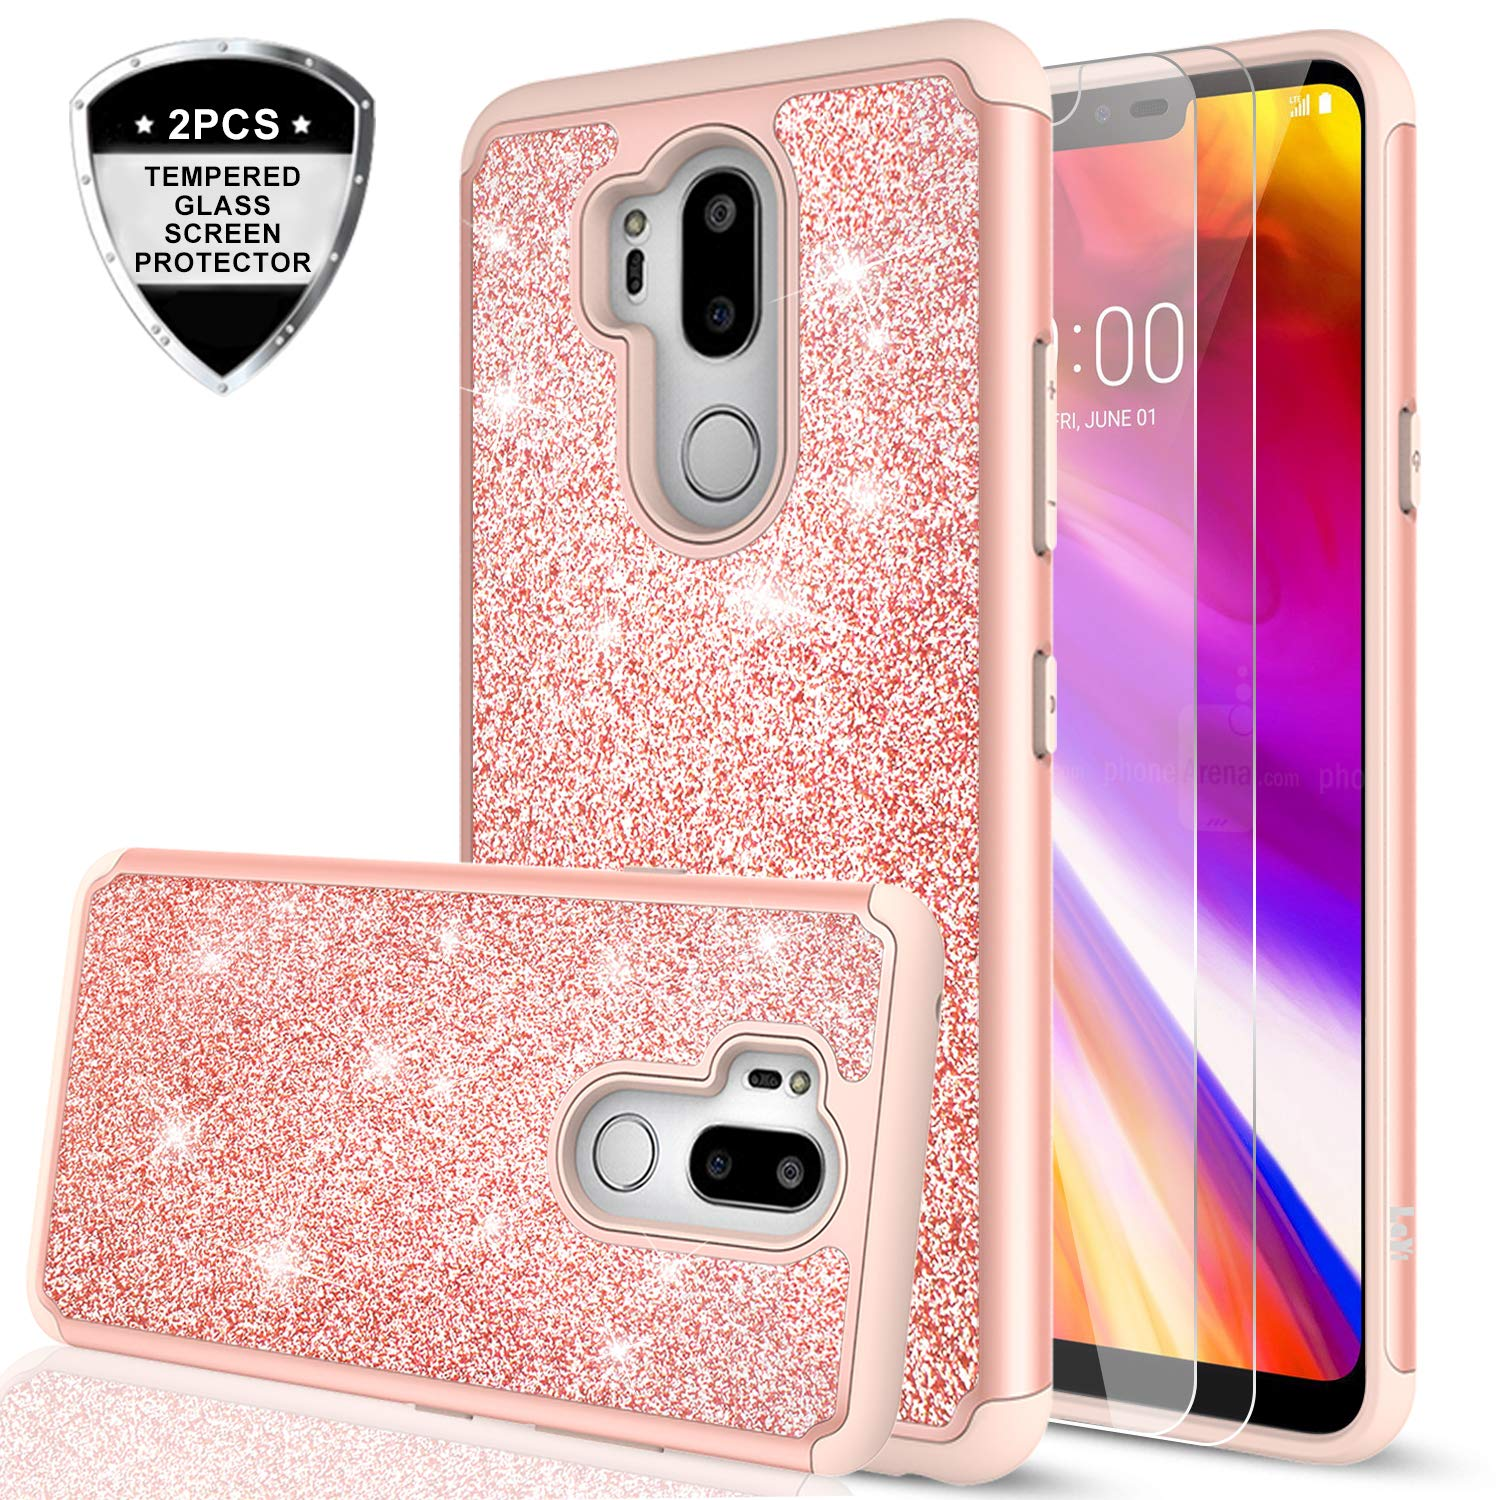 LG G7 ThinQ Case, LG G7 Glitter Case with Tempered Glass Screen Protector [2 Pack] for Girls Women,LeYi Sparkly Bling Dual Layer Hybrid Shockproof Protective Phone Case for LG G7 ThinQ TP Rose Gold 4344263894